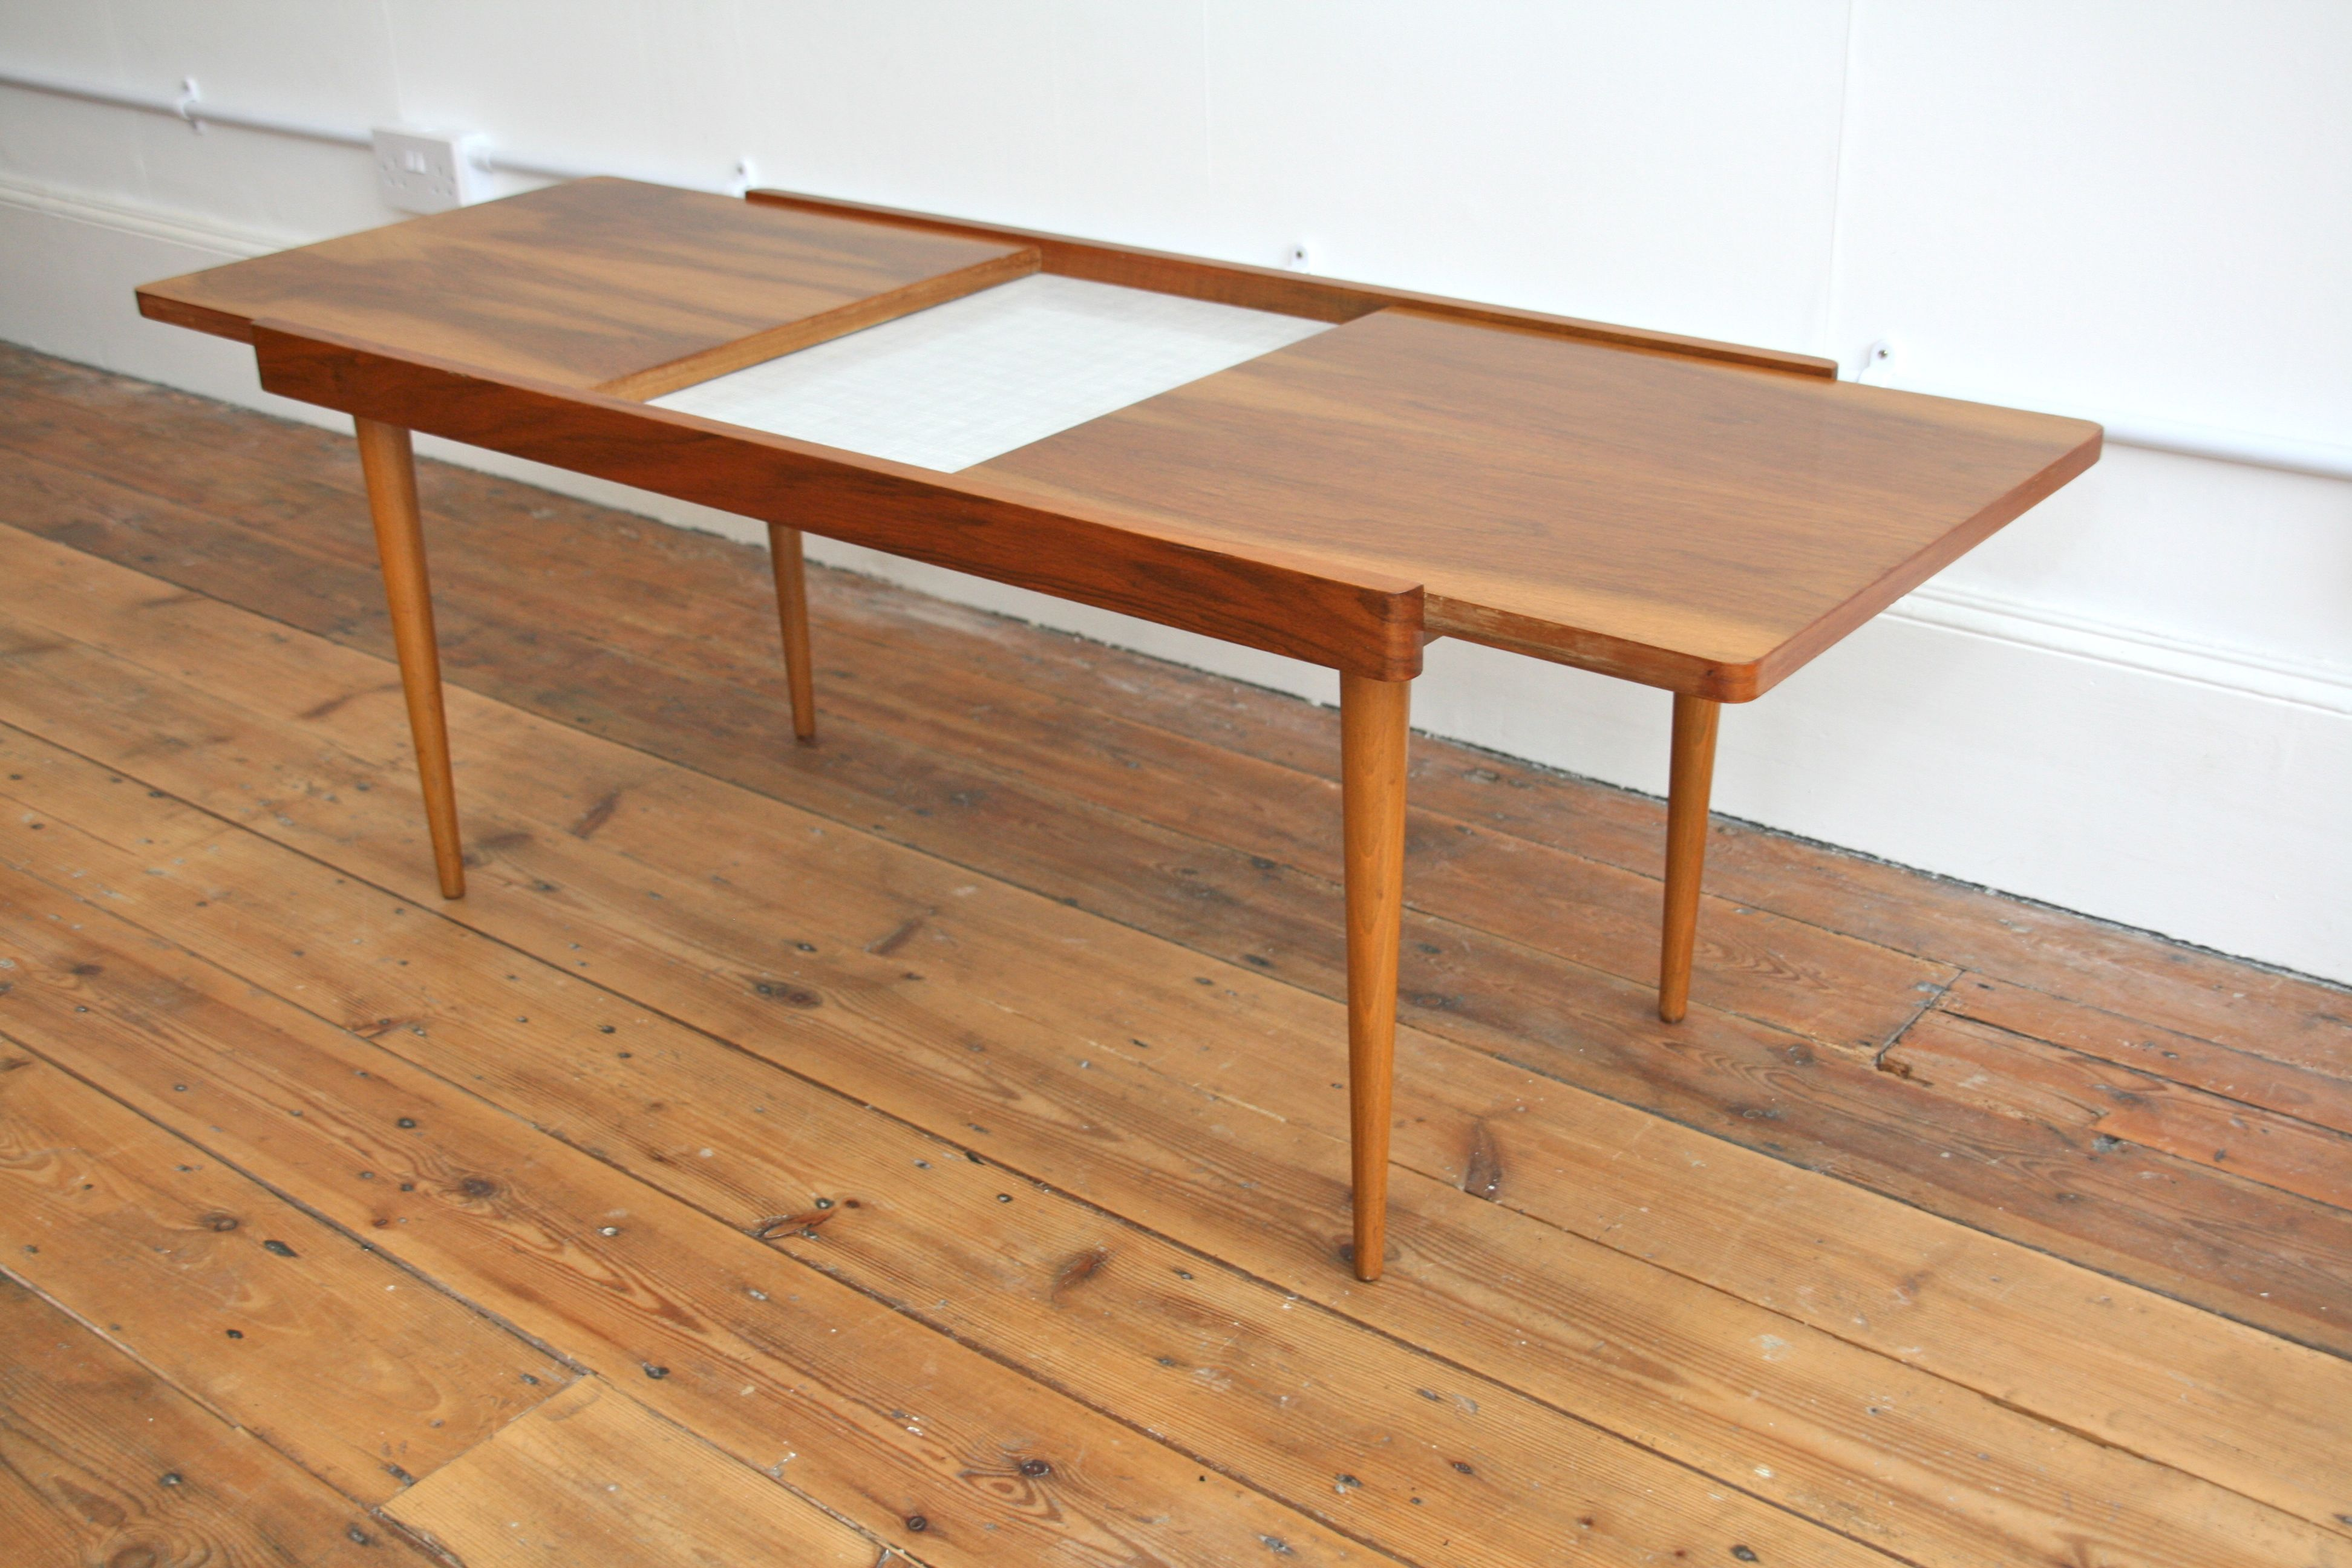 An Extending Coffee Table By Everest. The Leaves Open To Reveal An  Ingenious Formica Hotplate